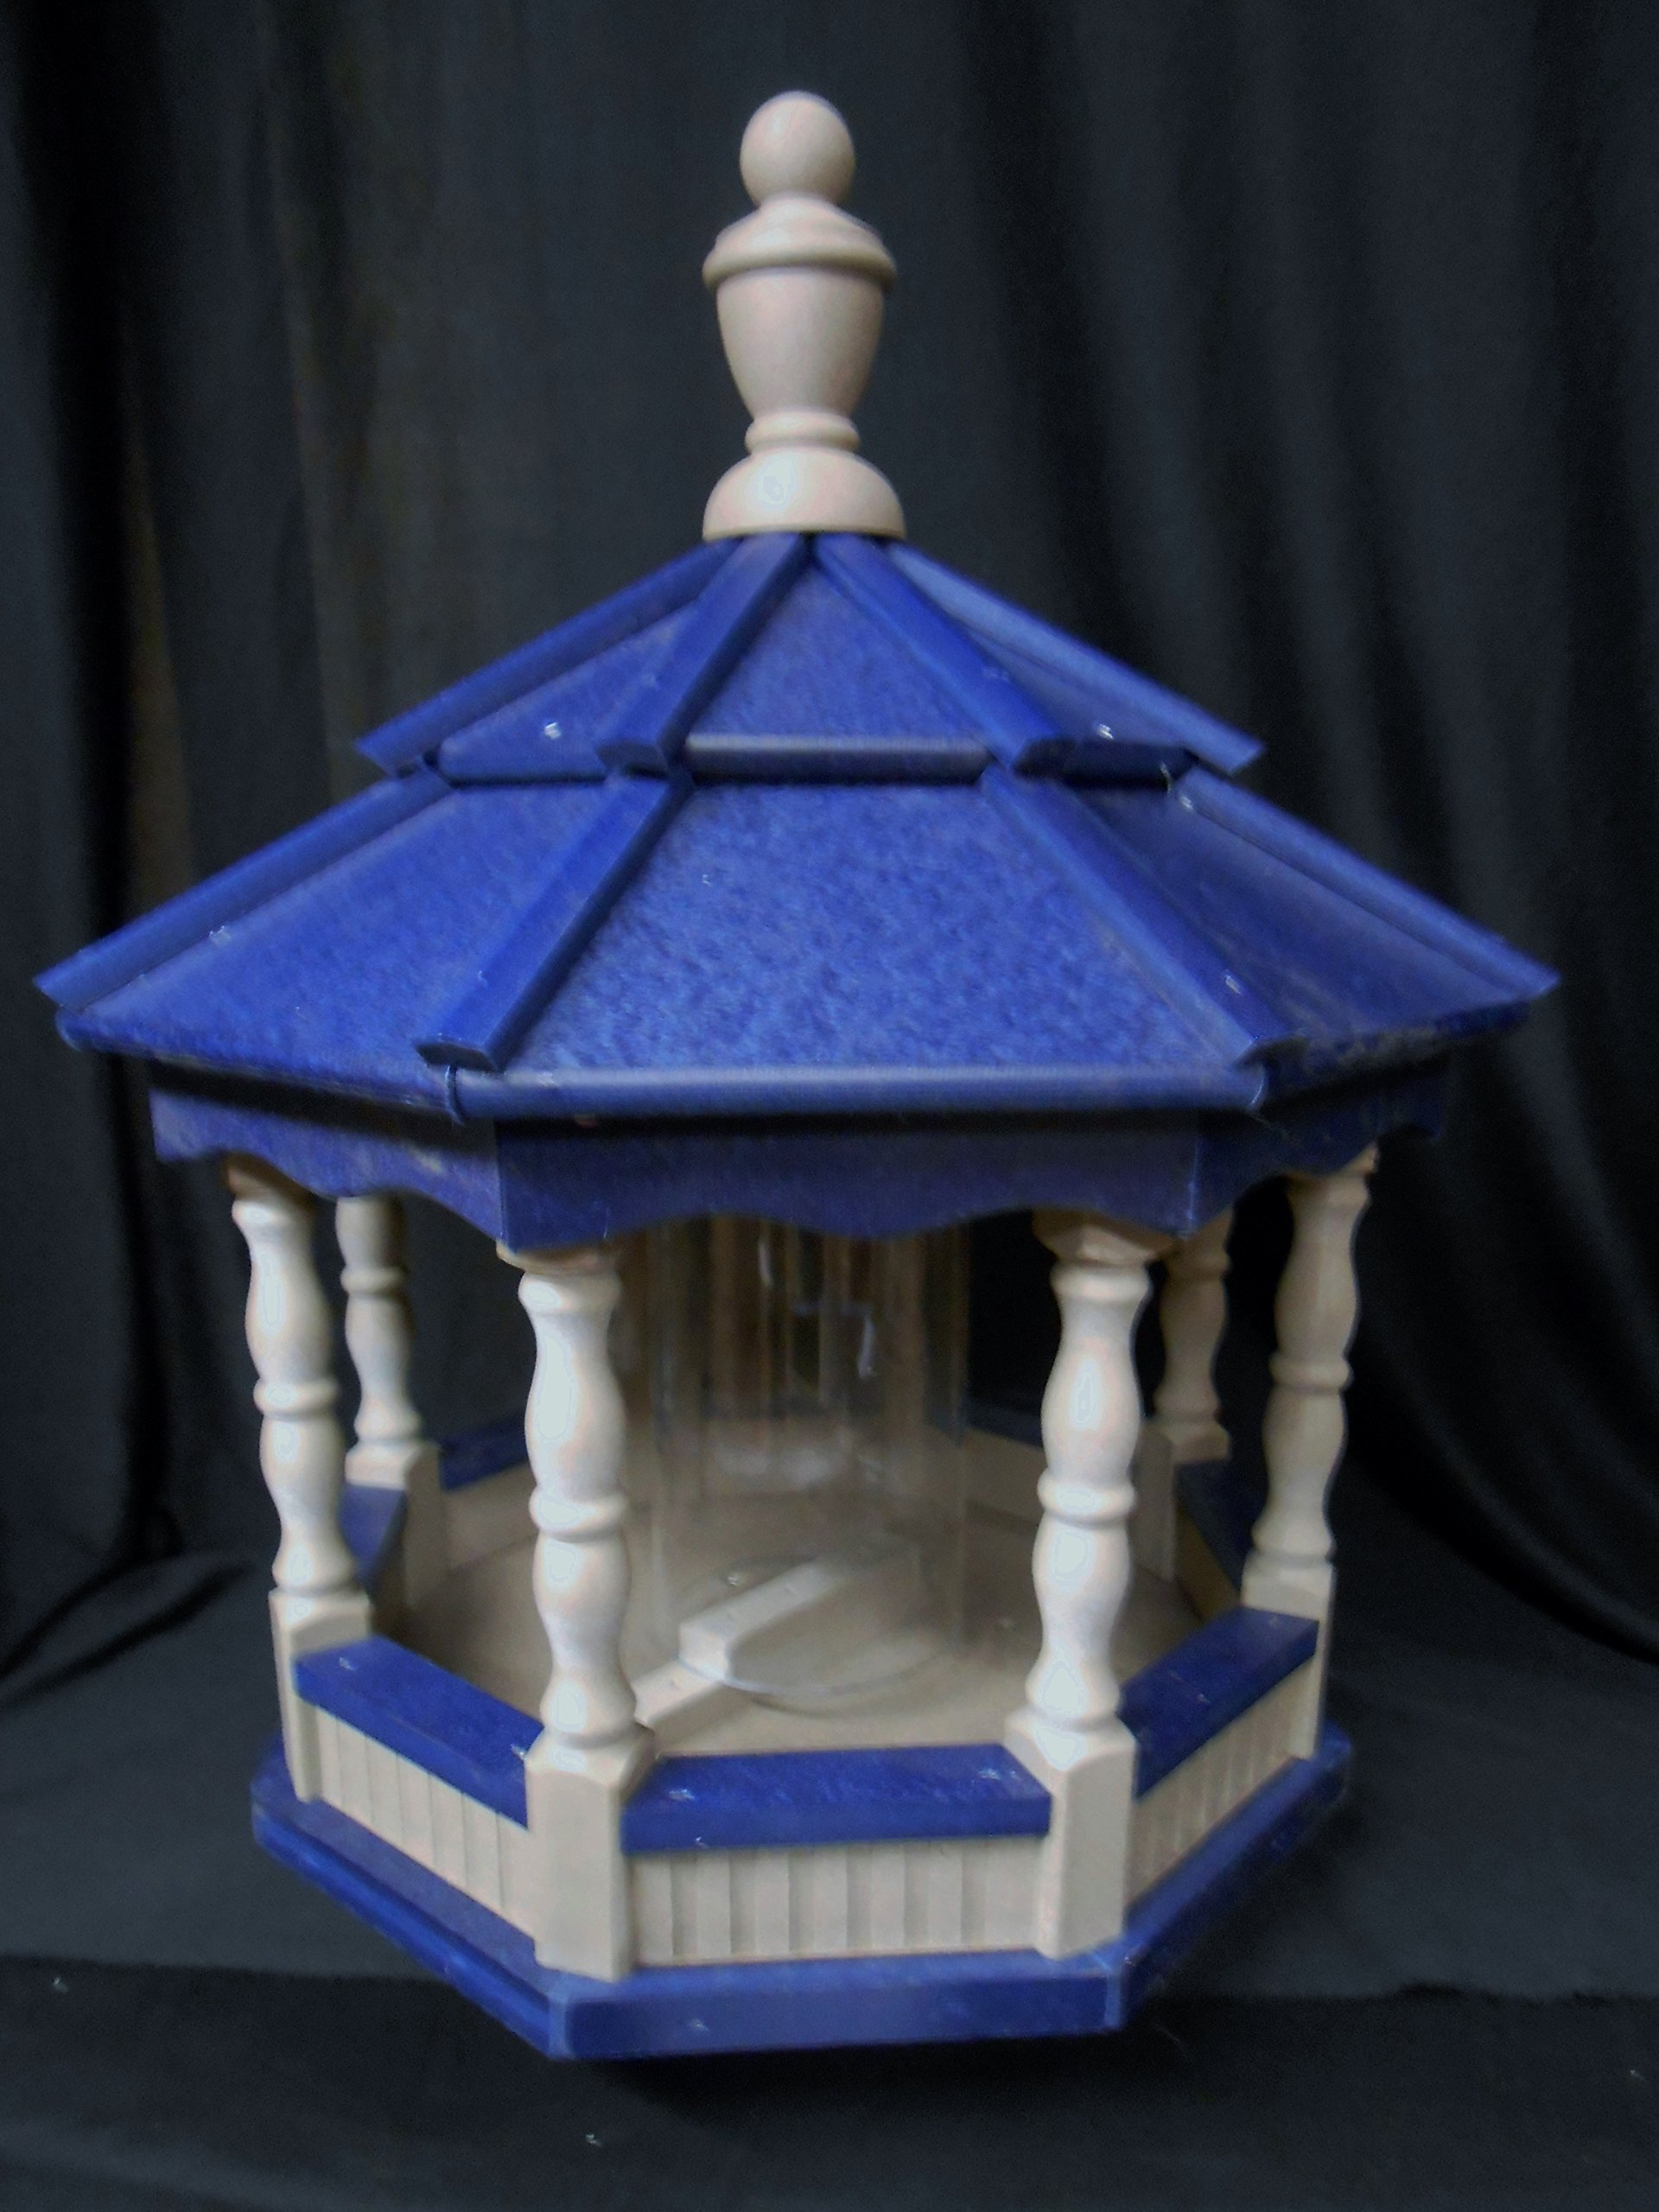 Poly Bird Feeder Amish Gazebo Handcrafted Homemade Clay & Blue Roof Md